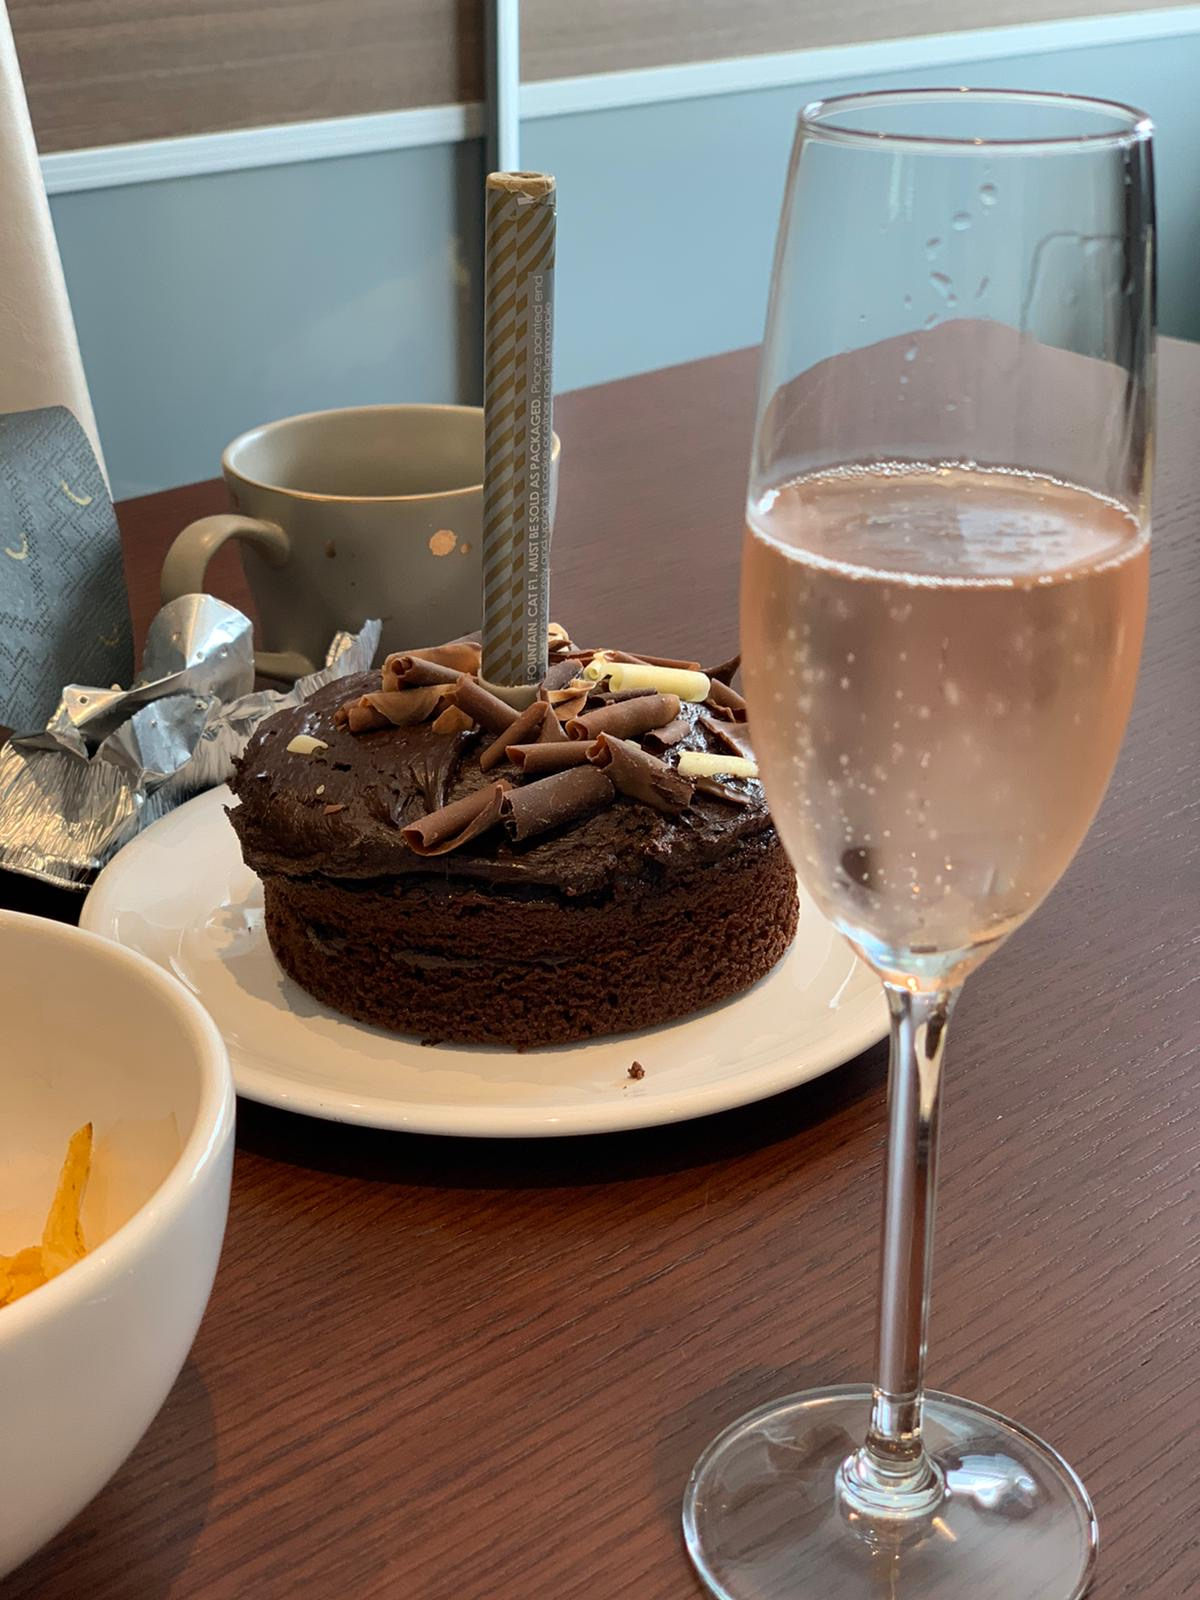 Cake and Fizz